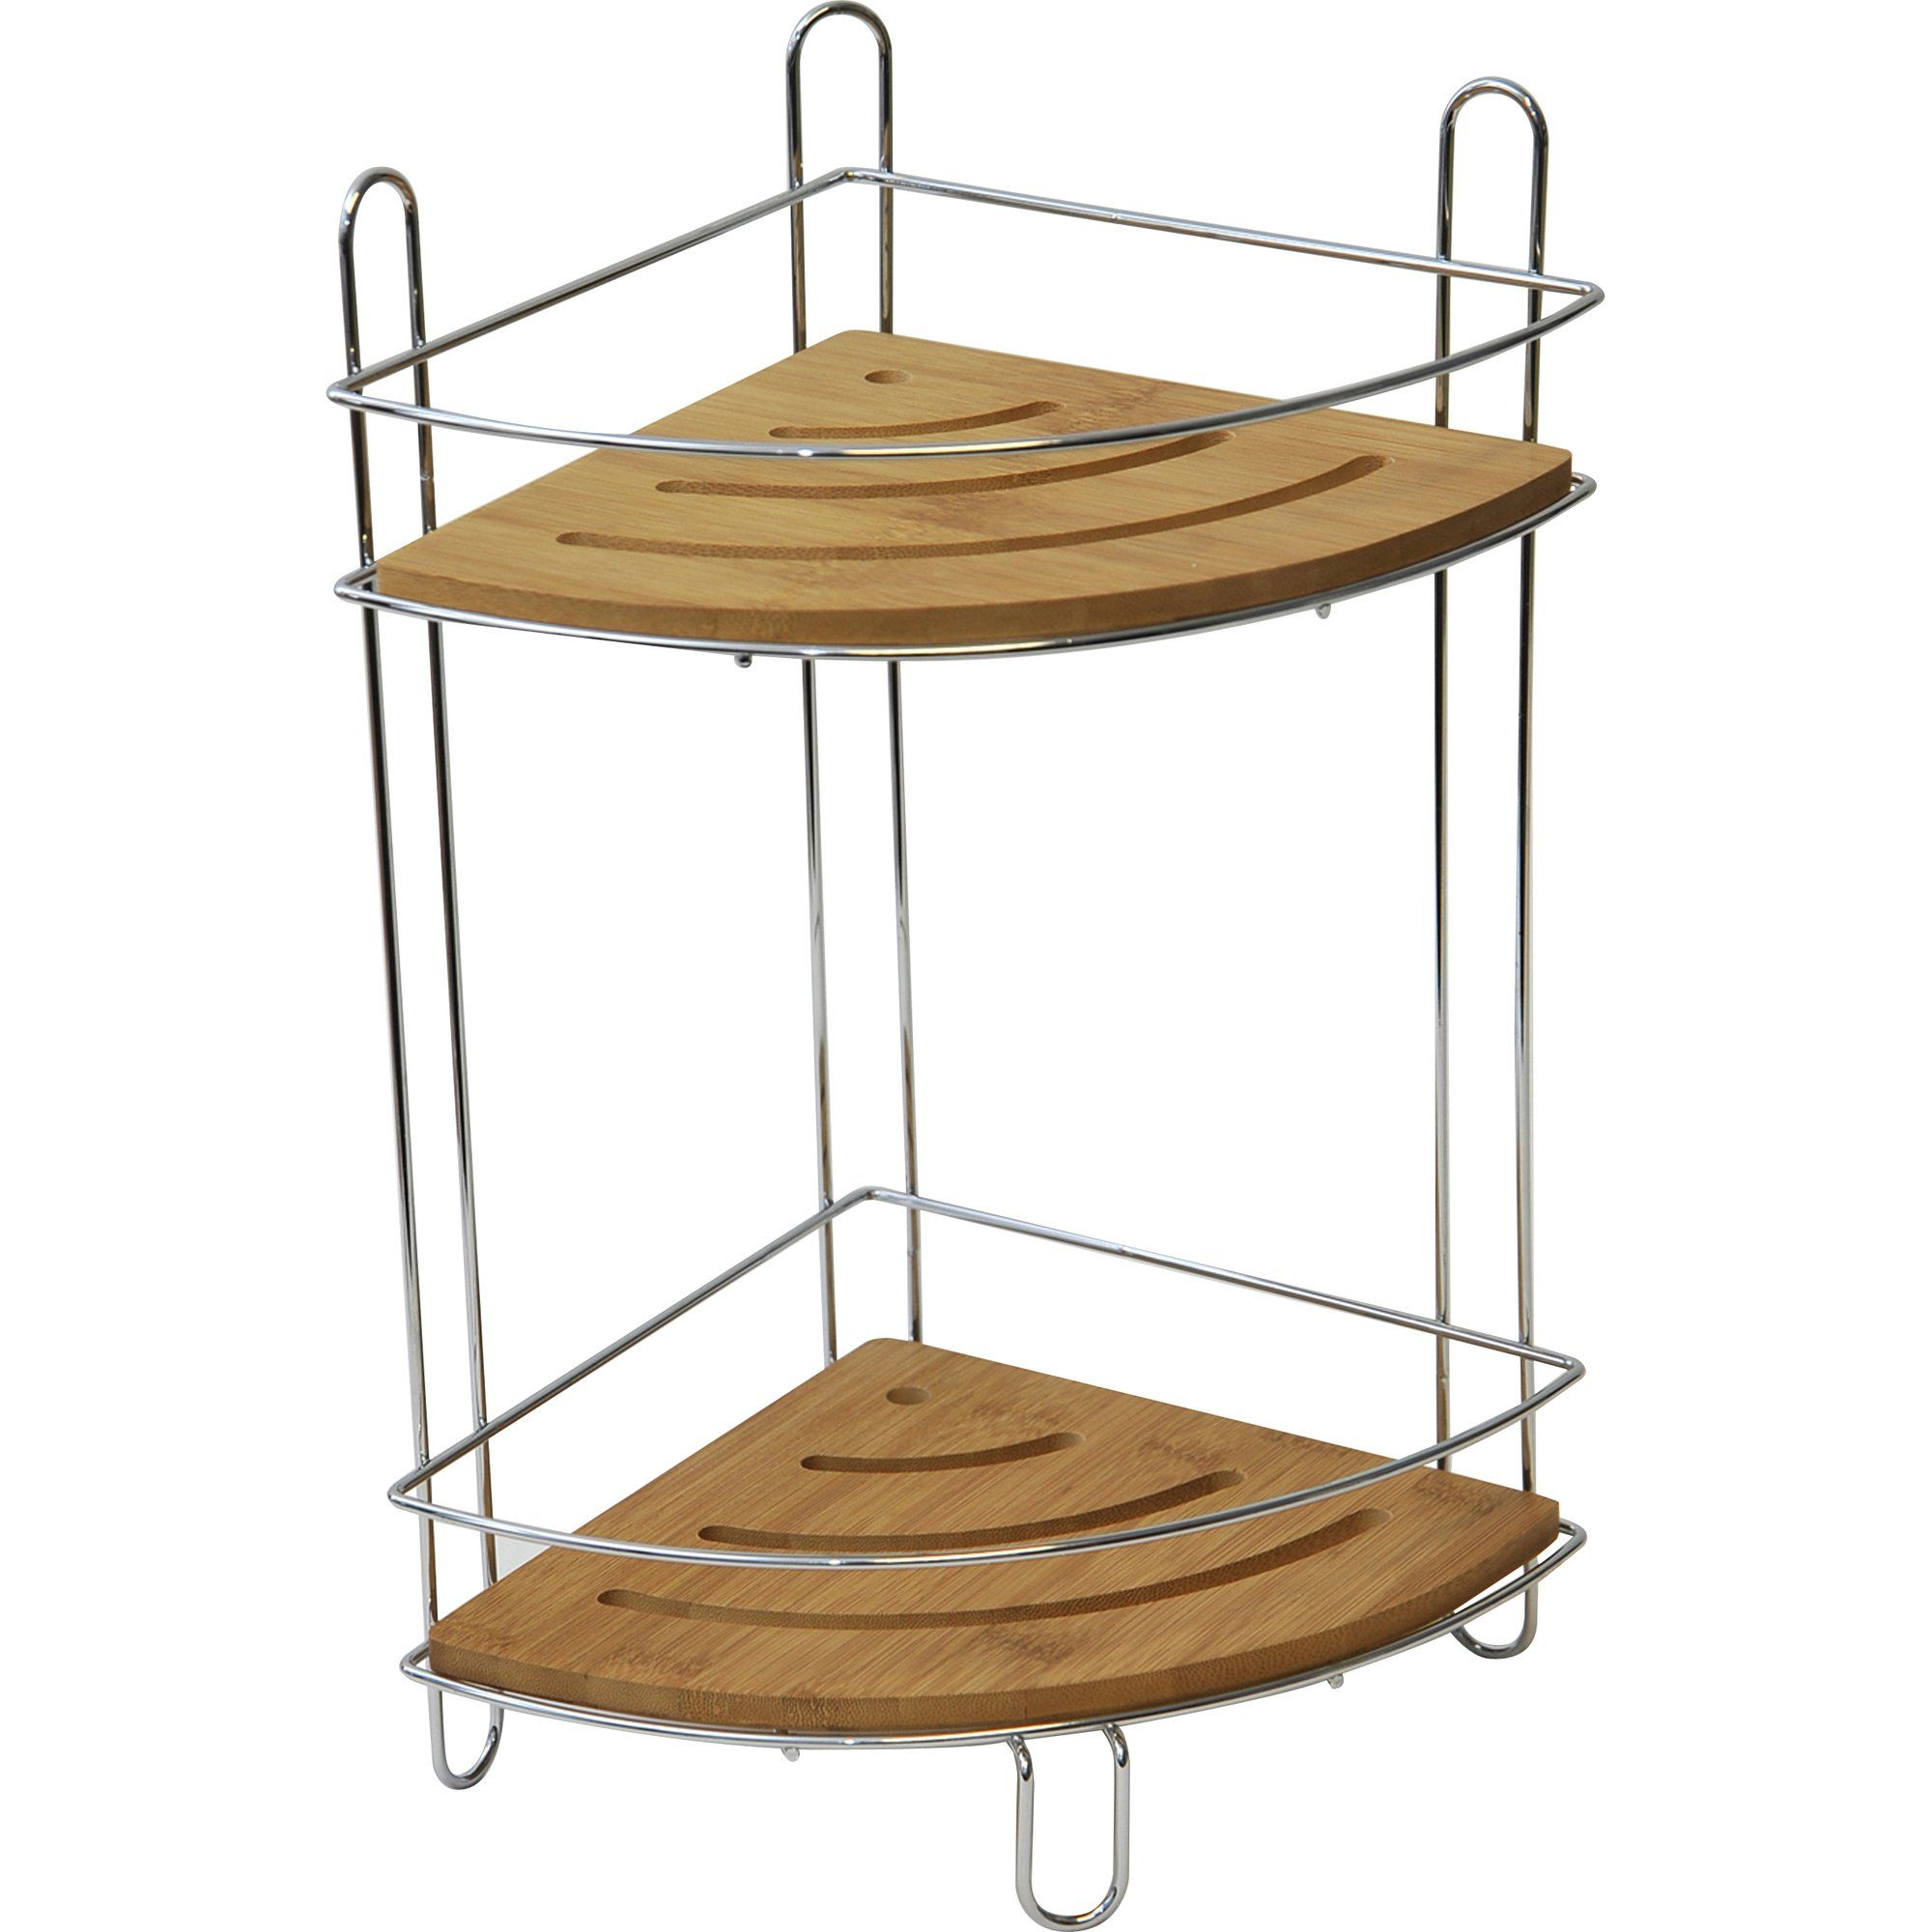 Shower Caddy Corner Shower Caddy Bamboo Shelf Standing Shower